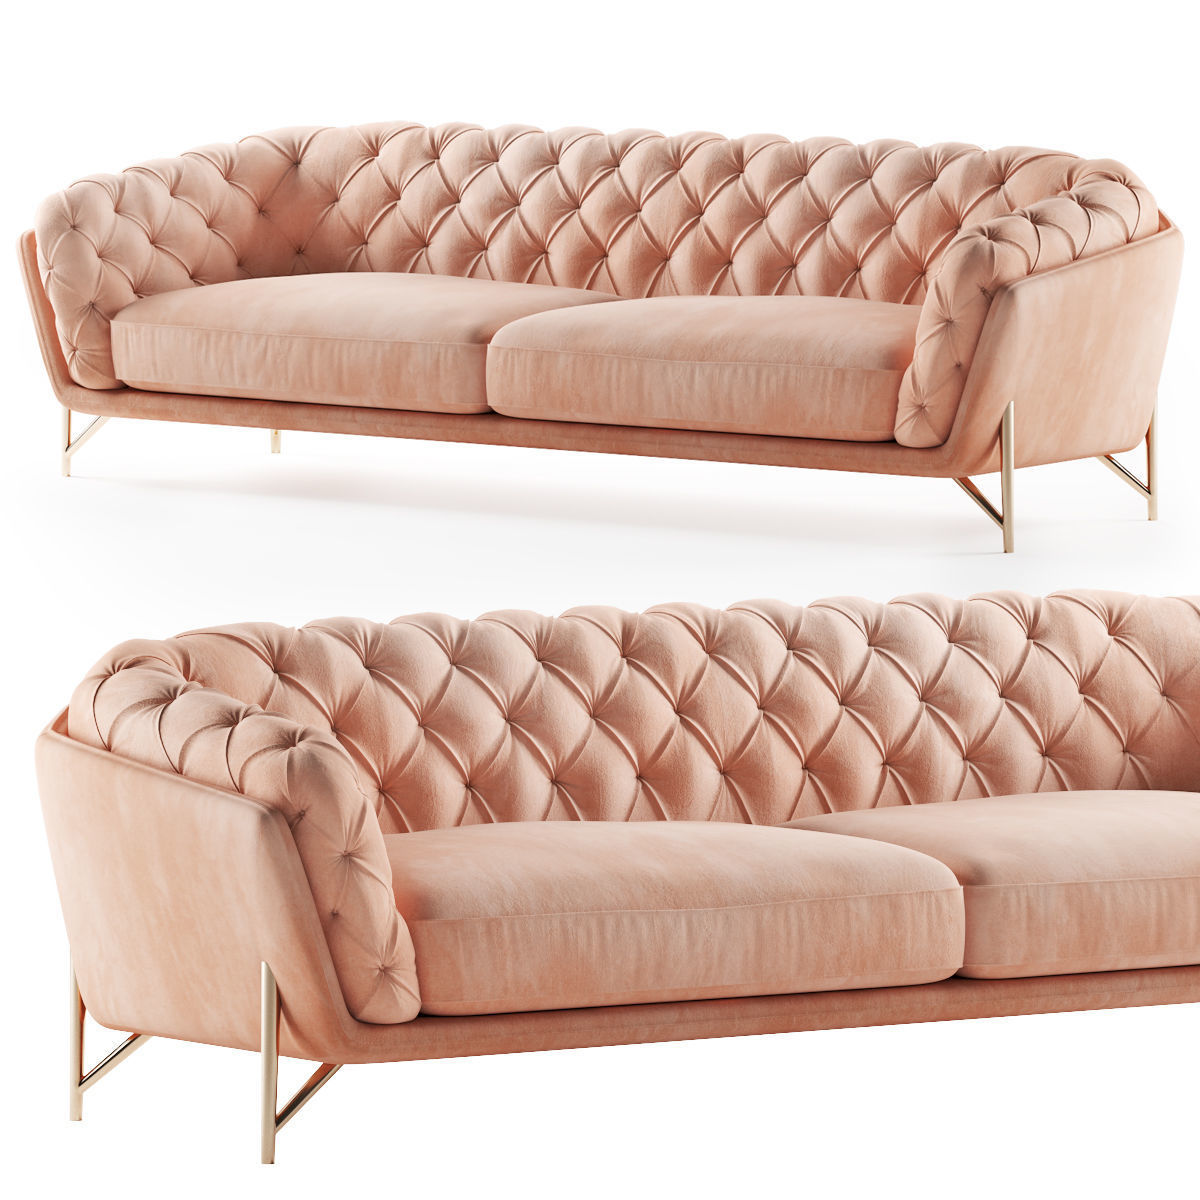 Calia Italia sofa art nouveau